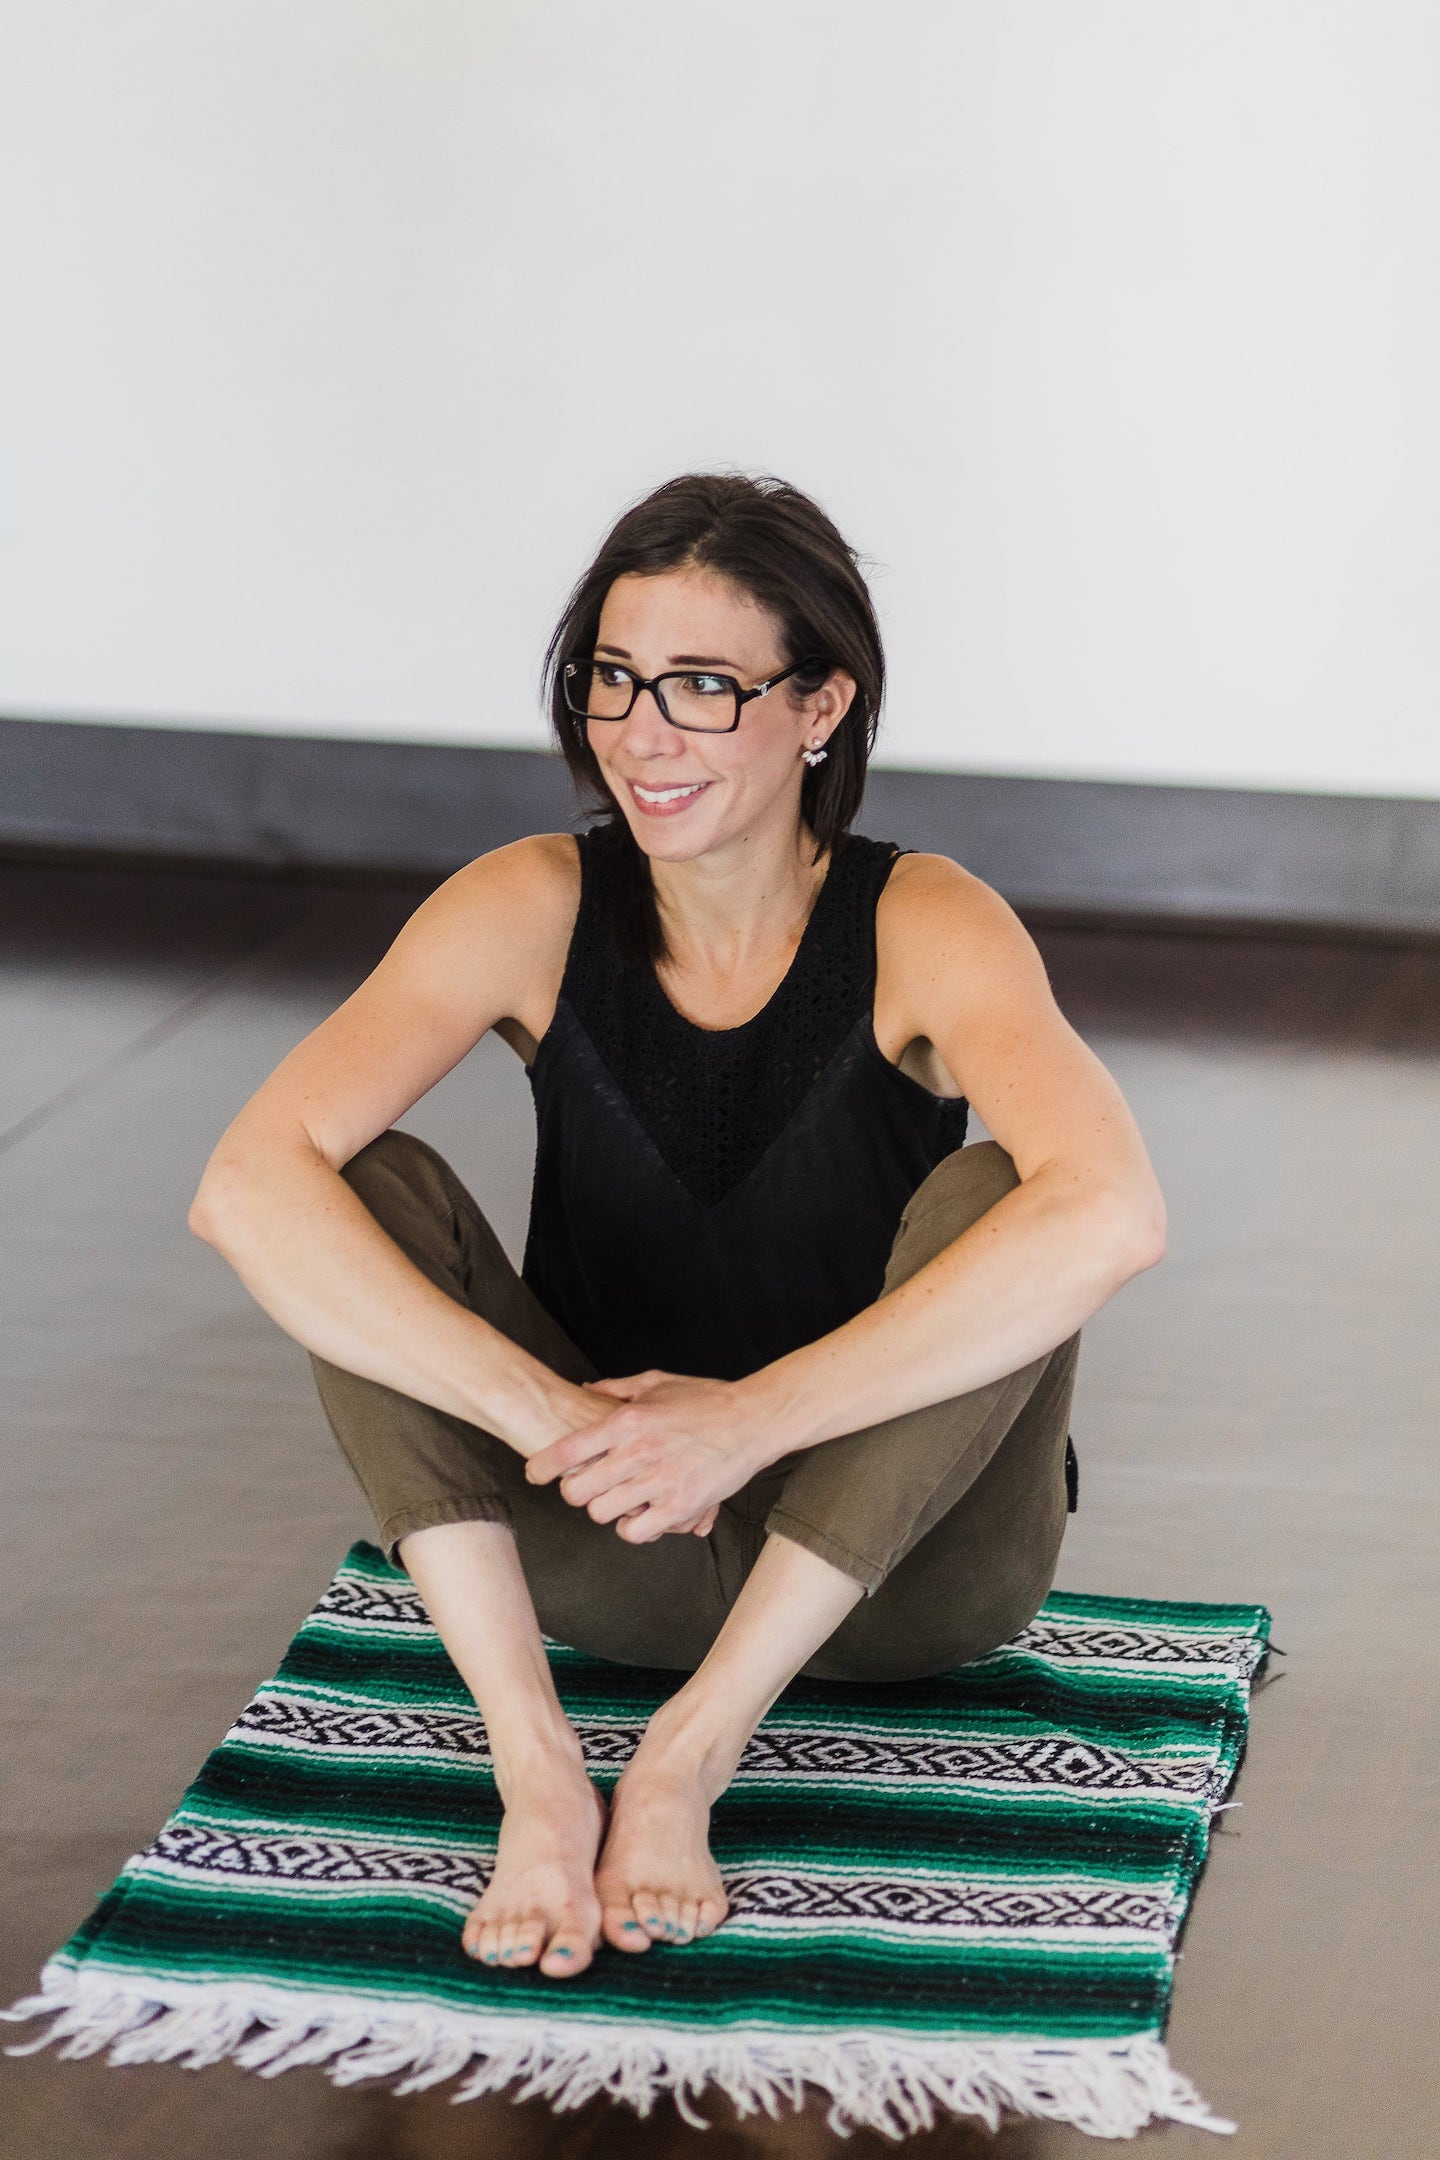 woman sitting on a yoga blanket in yoga studio.jpg